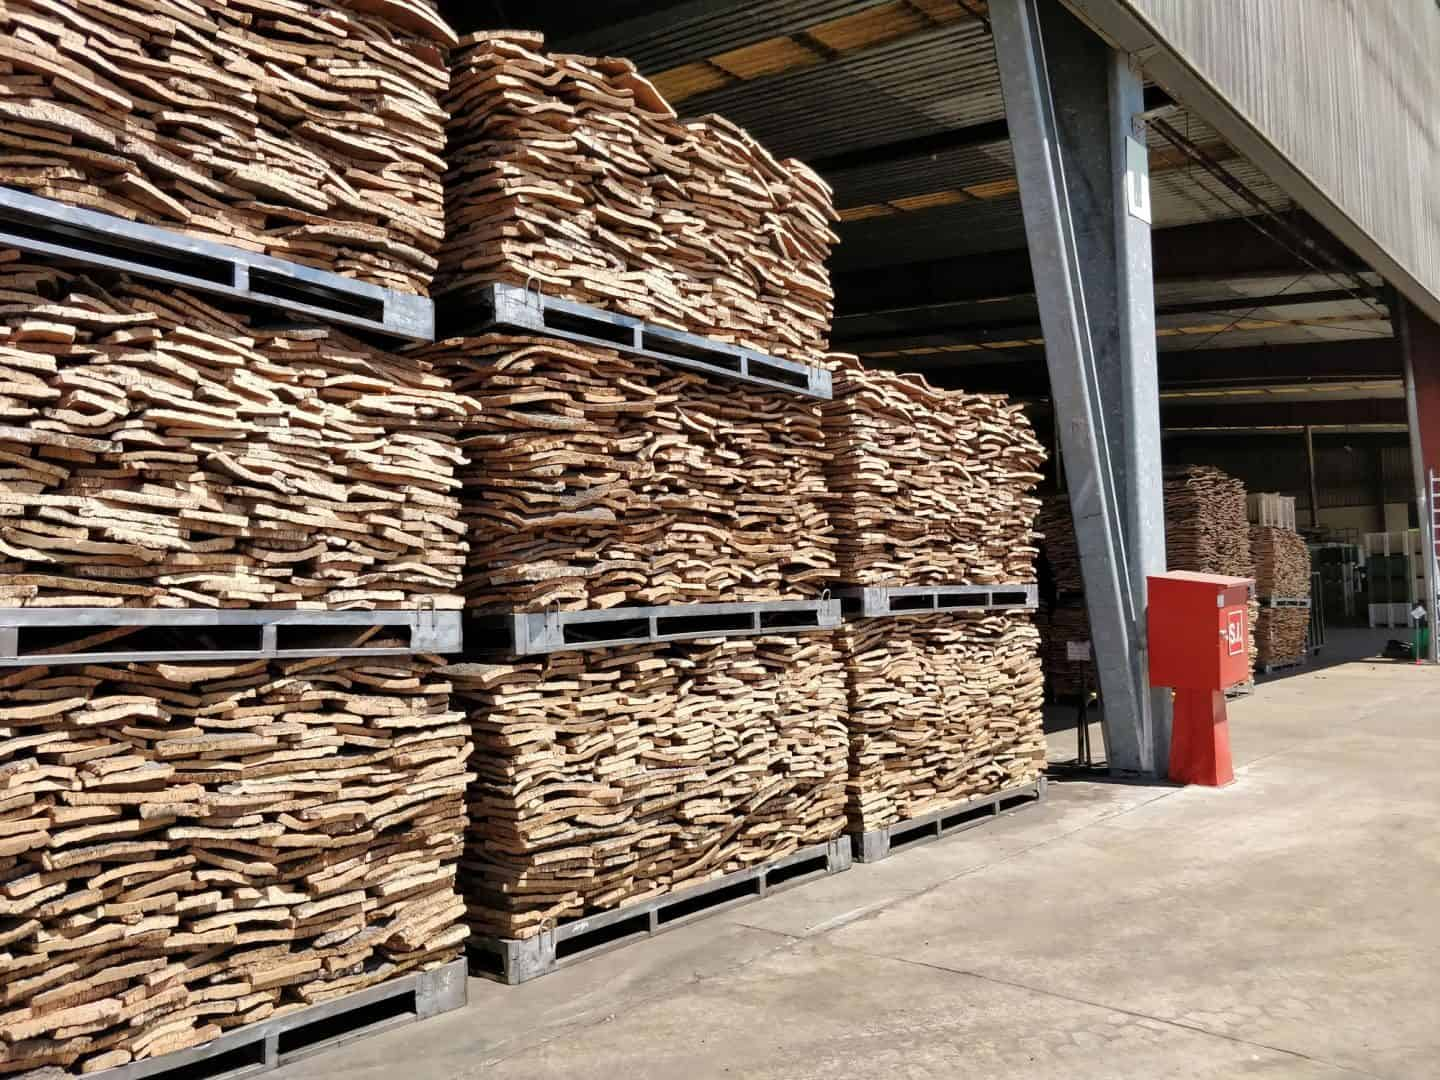 Cork is stored outside for 6 months to a year before it can be used in the cork production process